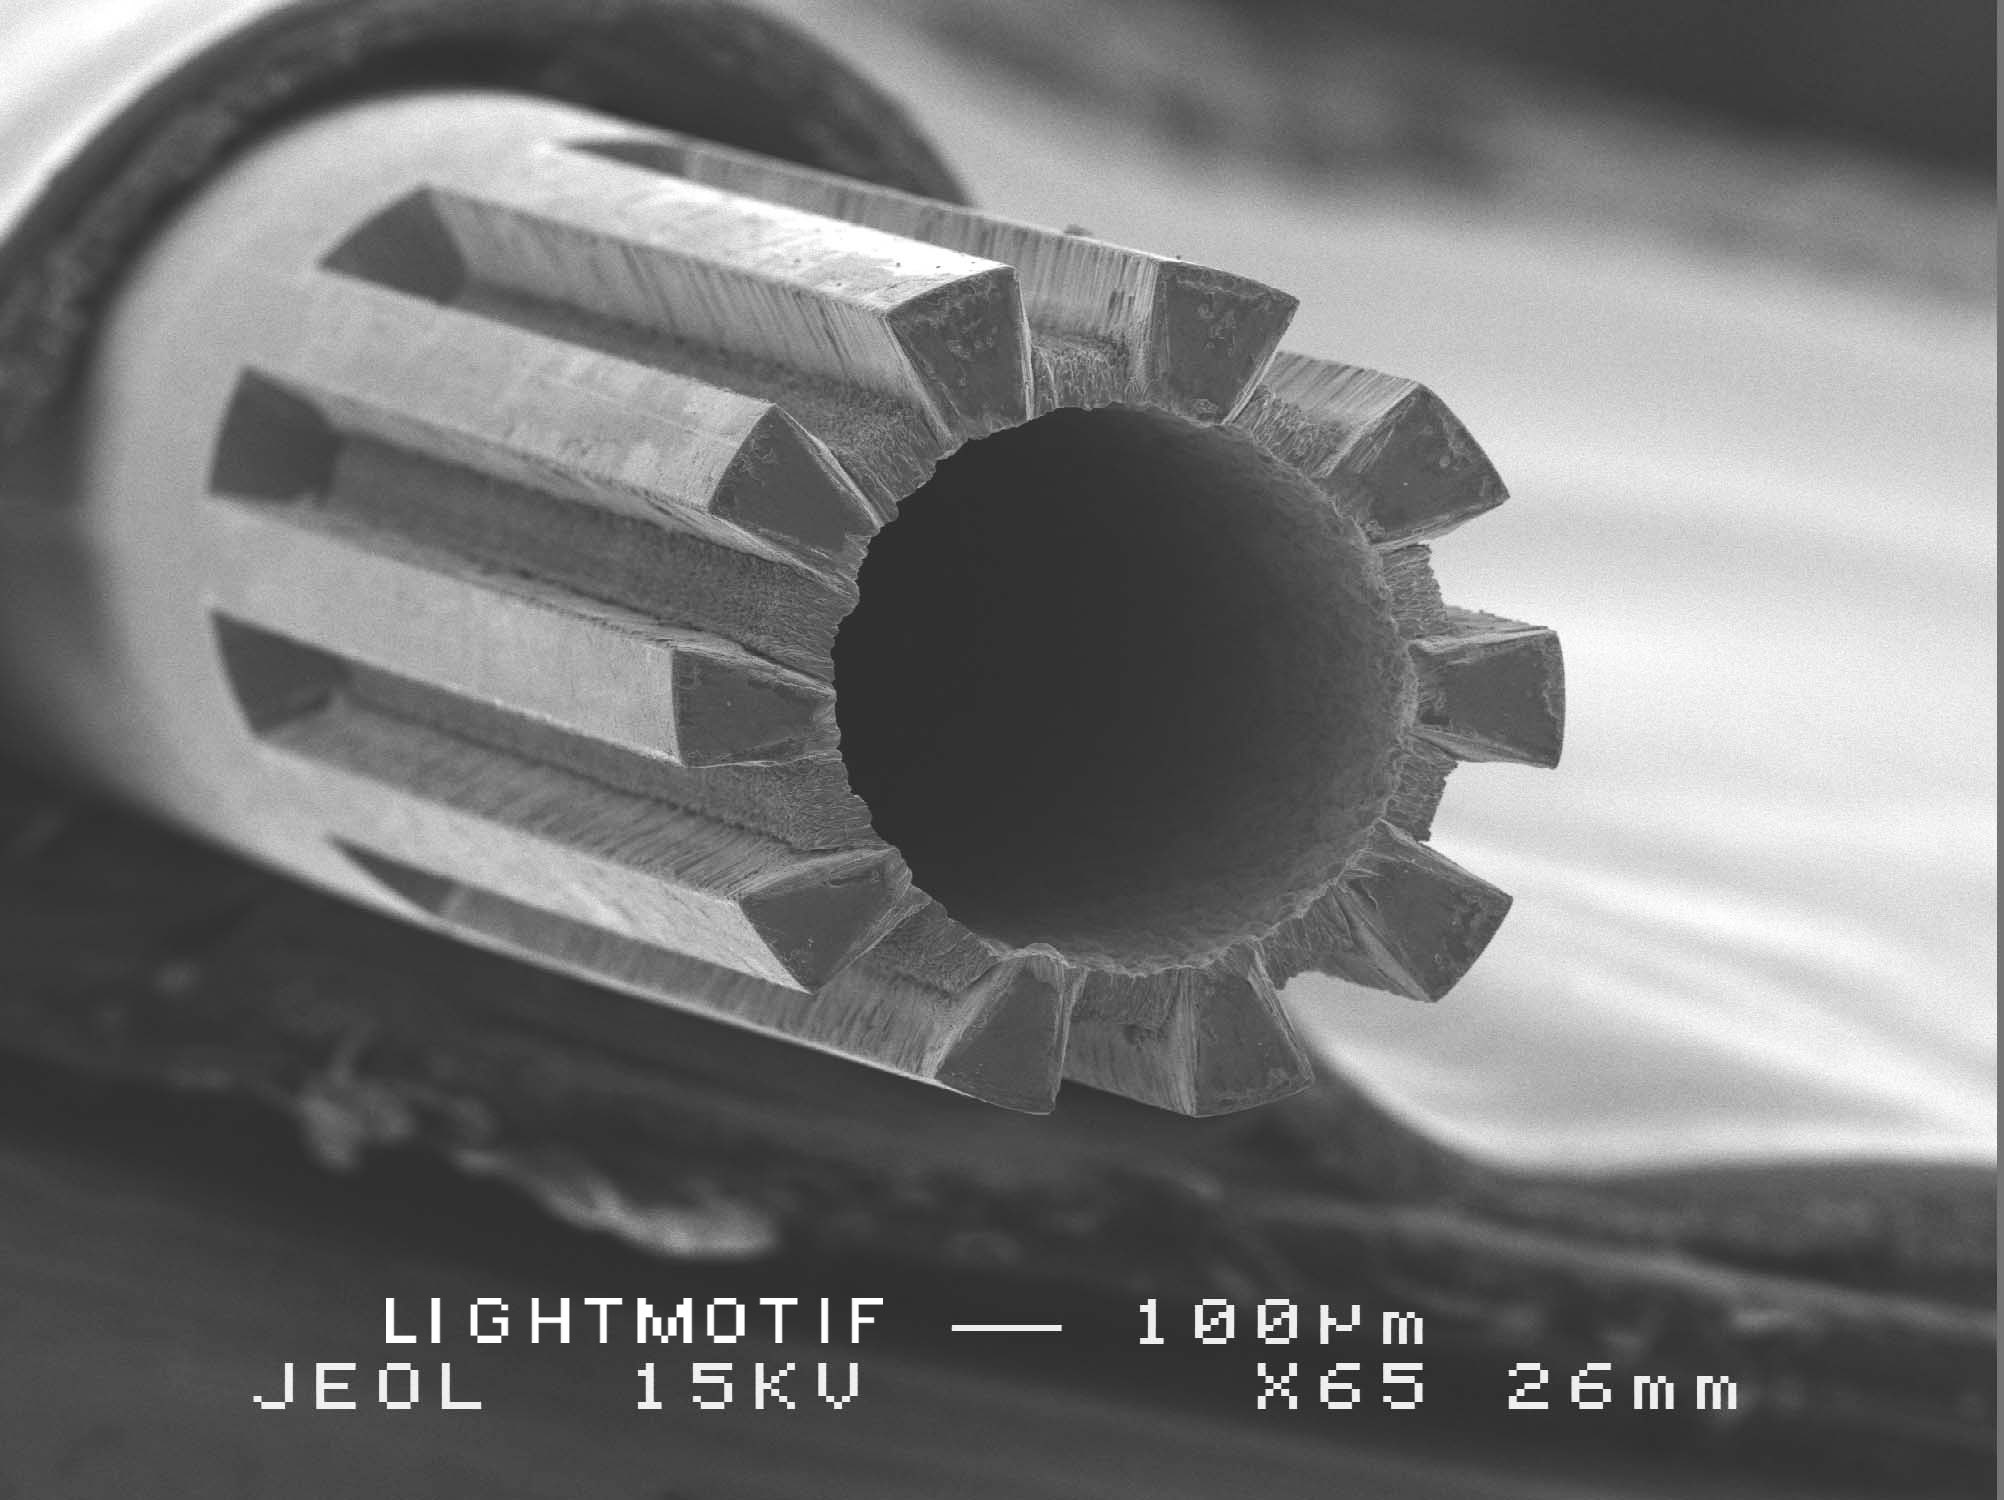 micromachined_needle.jpg